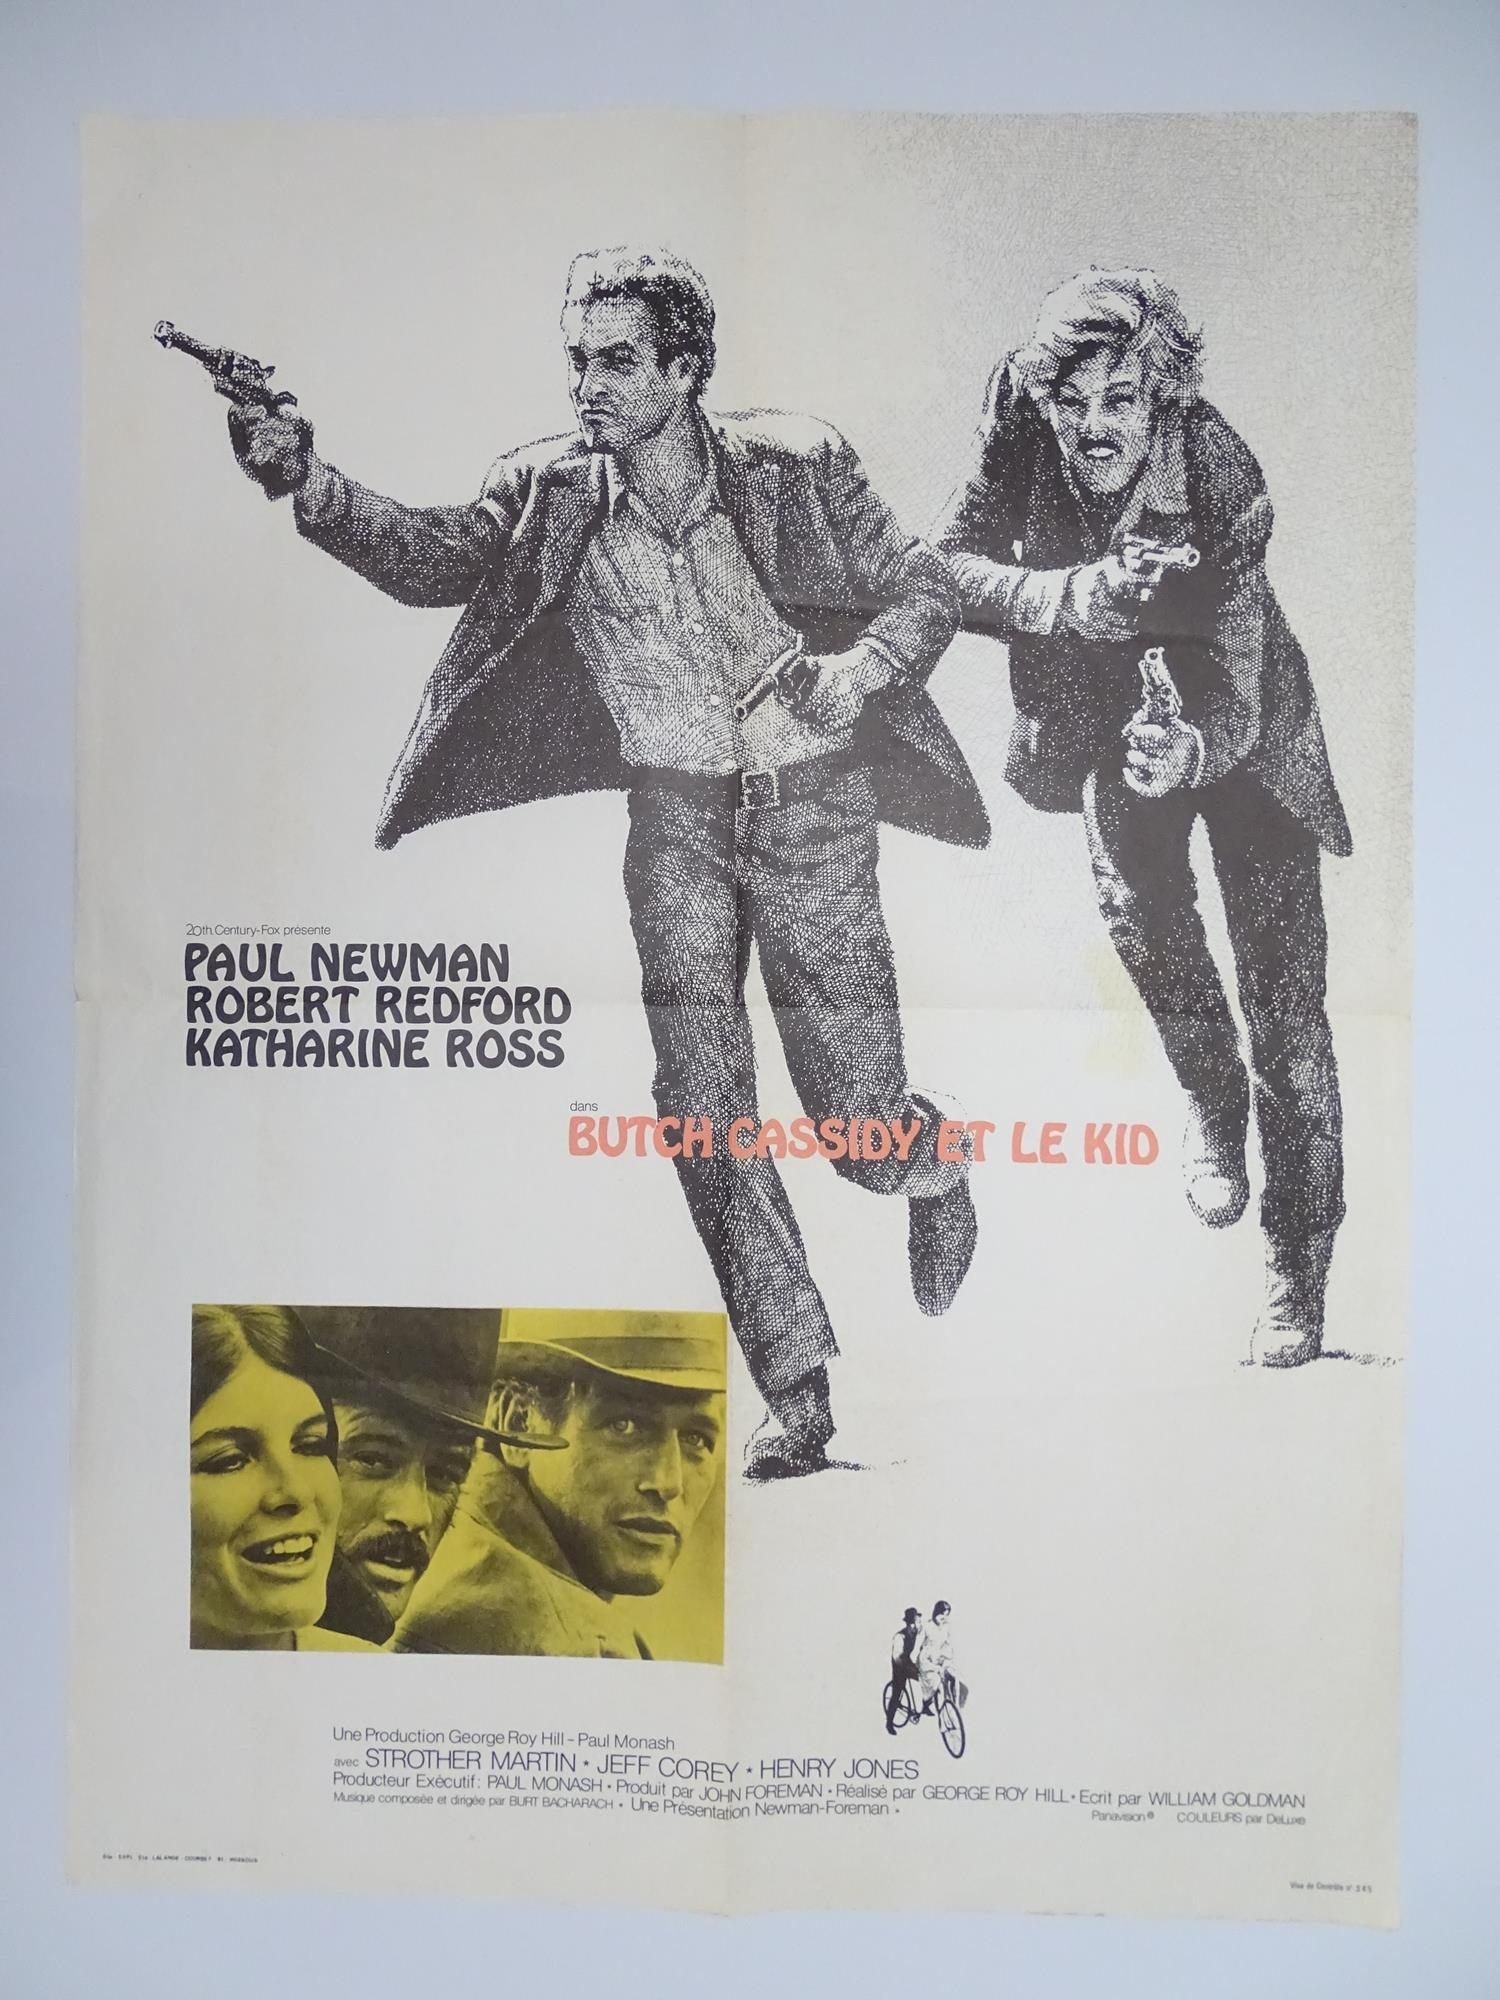 BUTCH CASSIDY ET LE KID (BUTCH CASSIDY AND THE SUNDANCE KID) (1970) - French Moyenne Movie